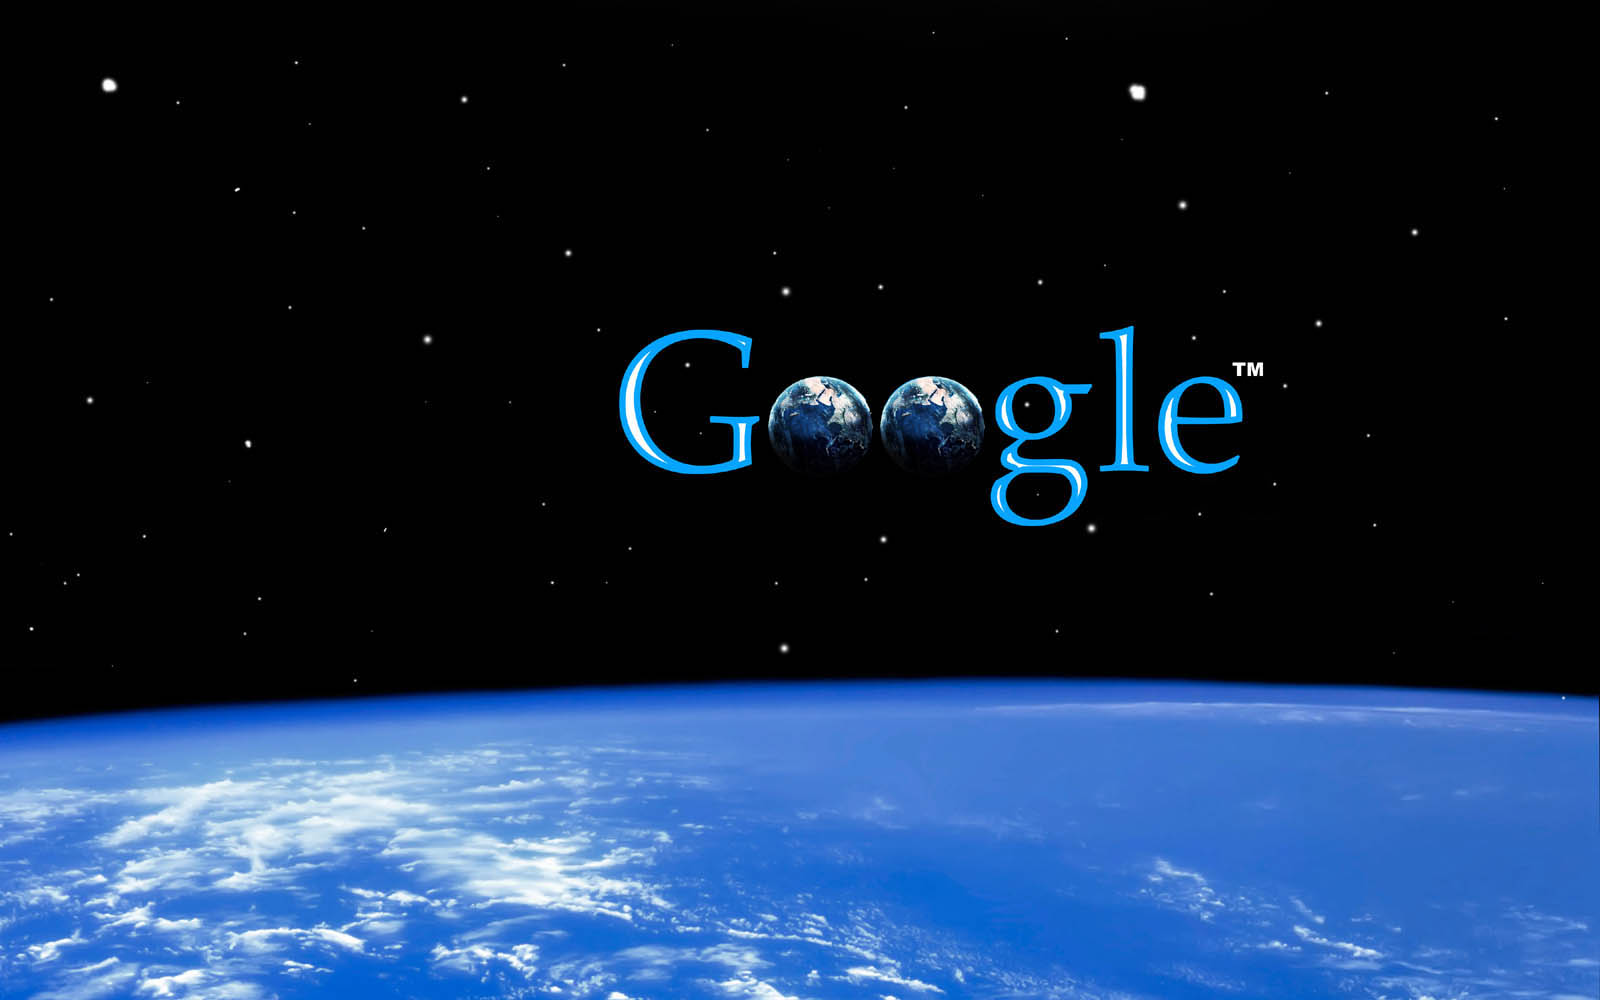 Google homepage themes gallery - Google Backgrounds Hd Wallpapers